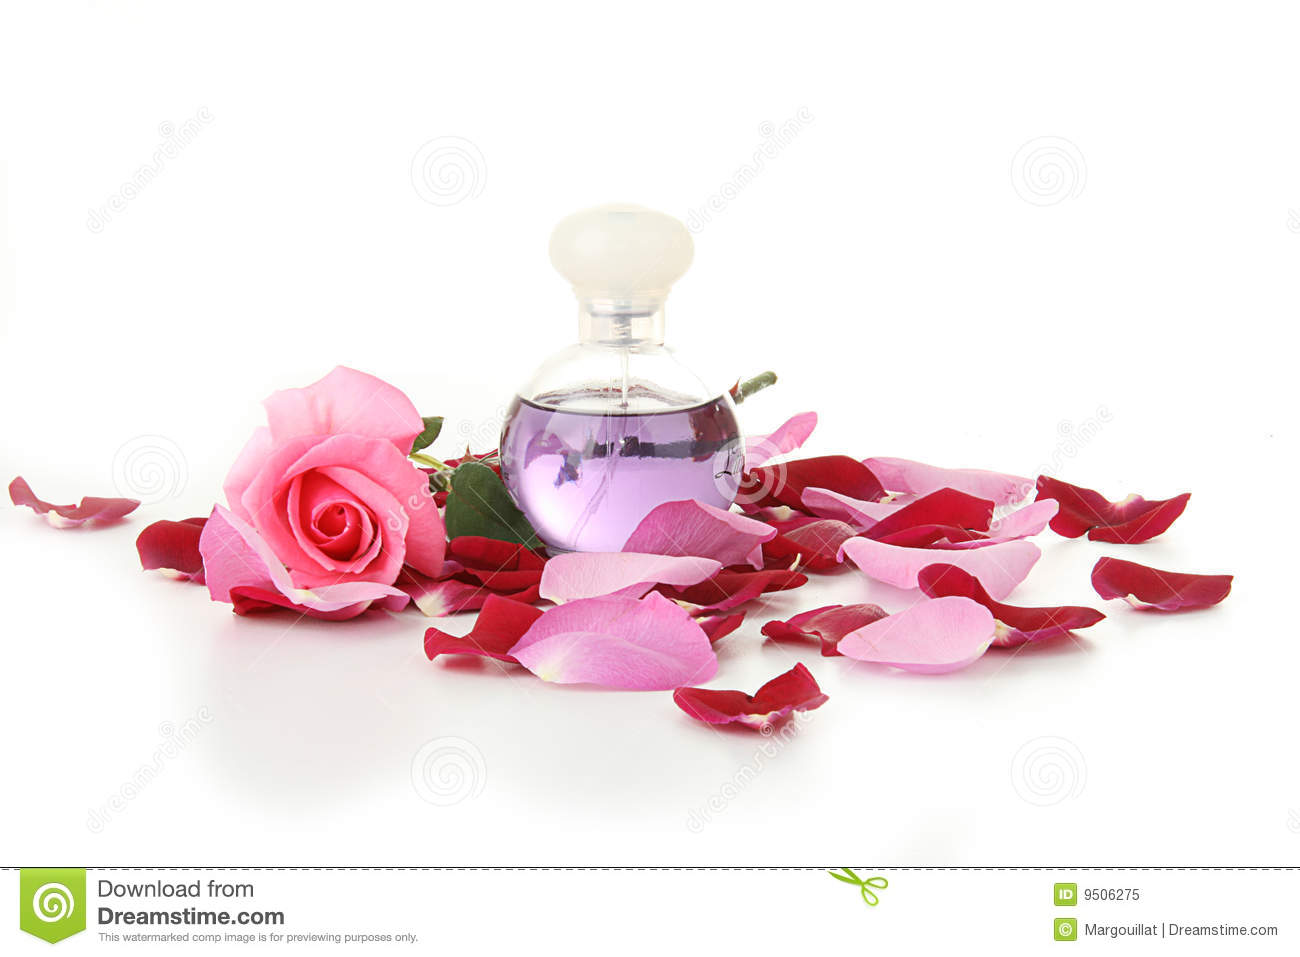 feminity  bottle of perfume and rose petals stock image bathroom background music bathroom background clipart